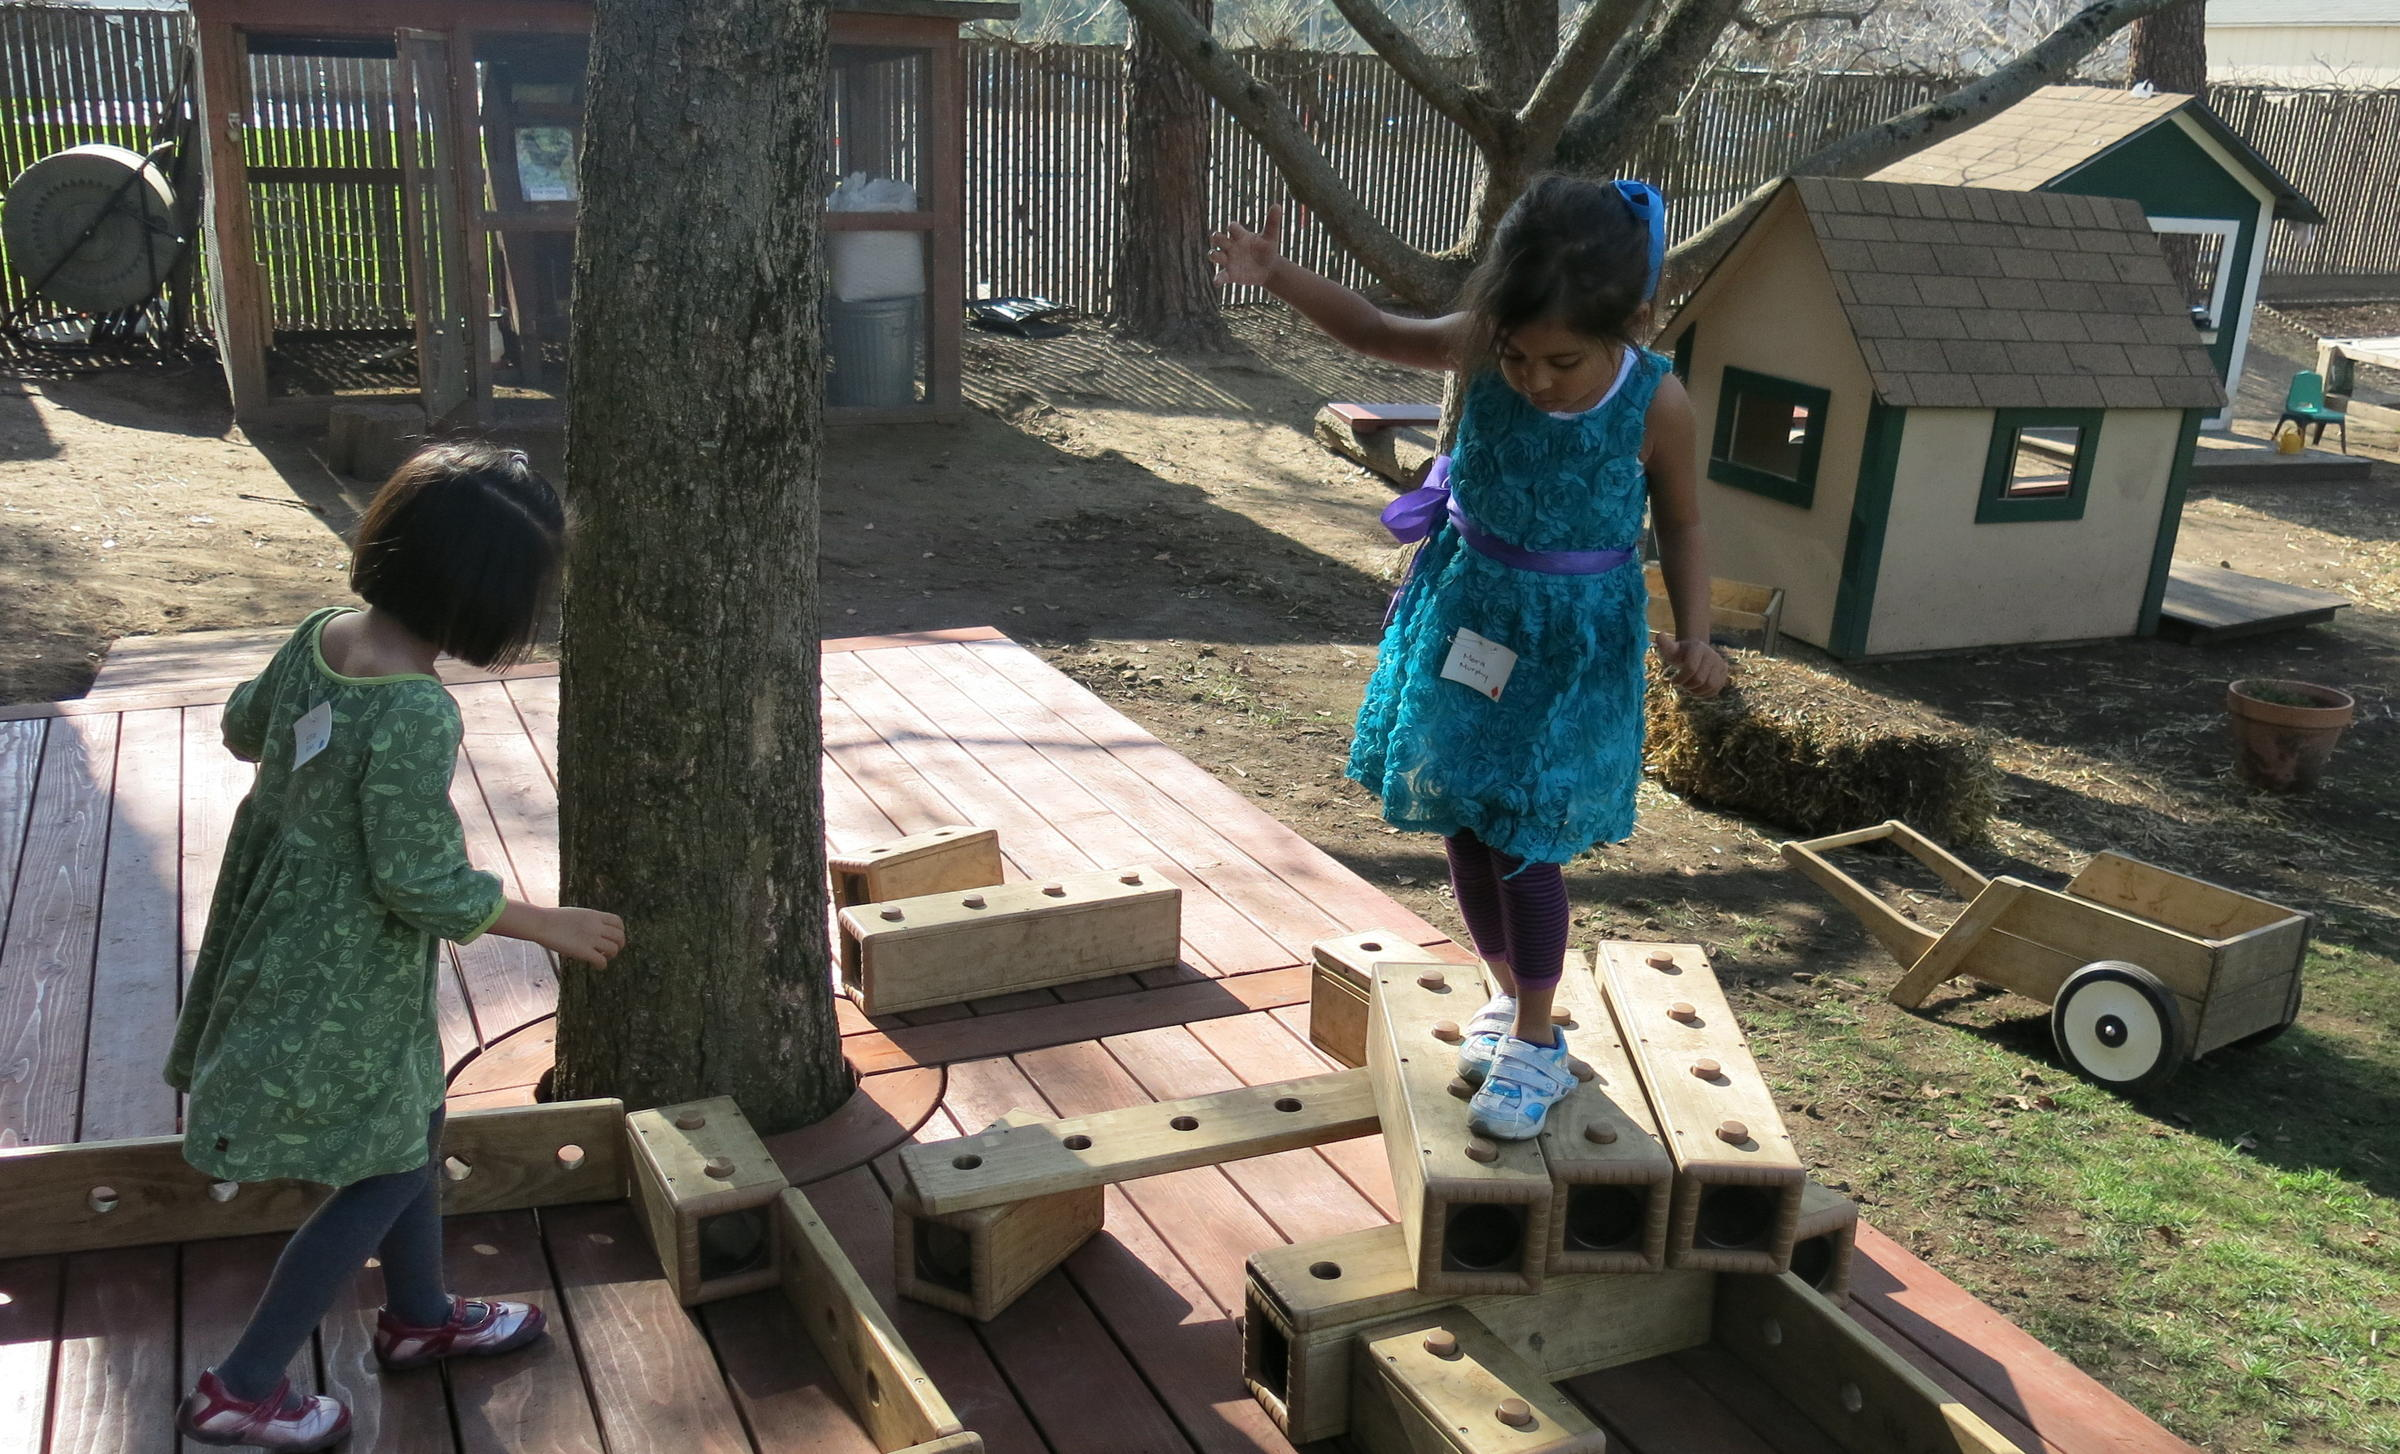 One Child S Stage Is Another Student Obstacle Course Preschoolers At Bing Nursery School Play With Outdoor Blocks